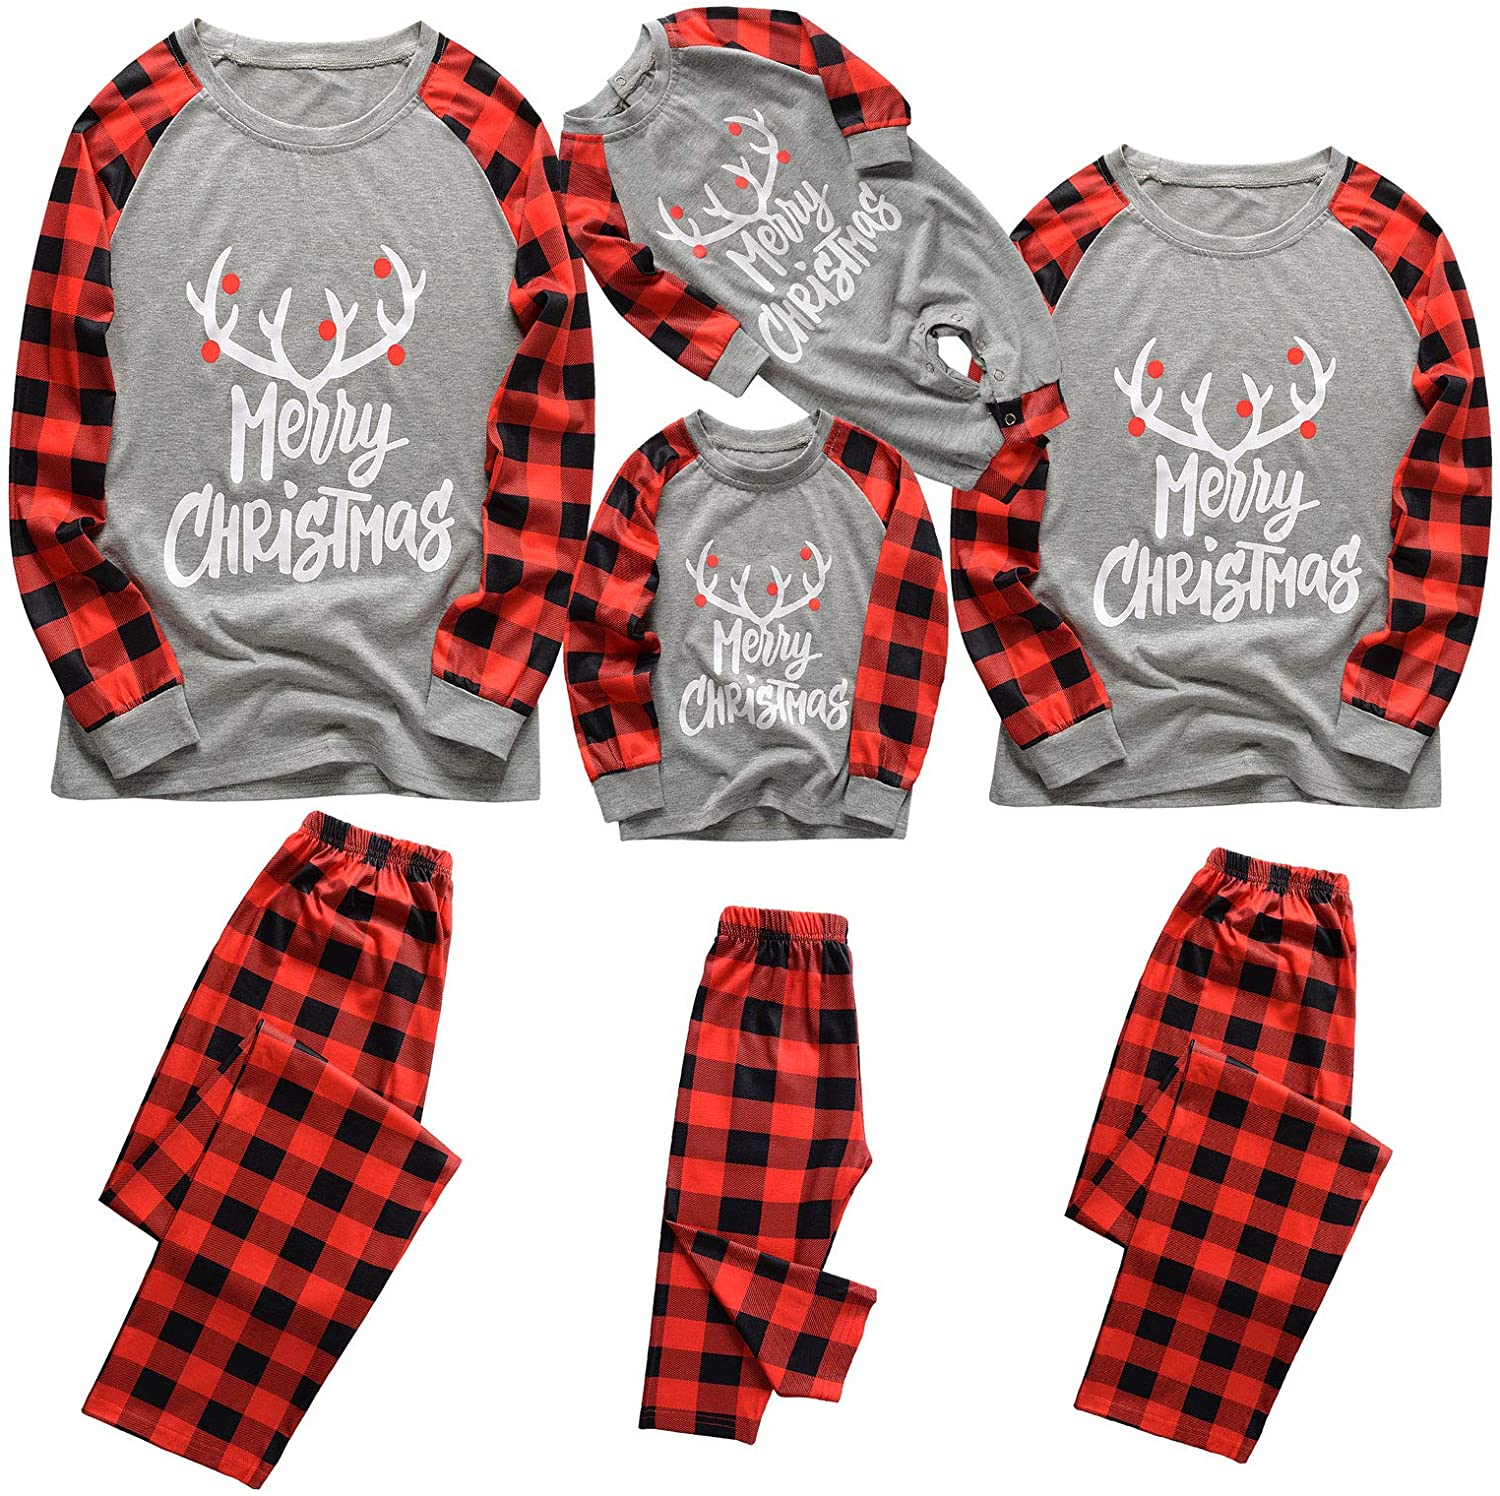 Unisex Family Matching Winter Holiday Christmas Pajama Collection